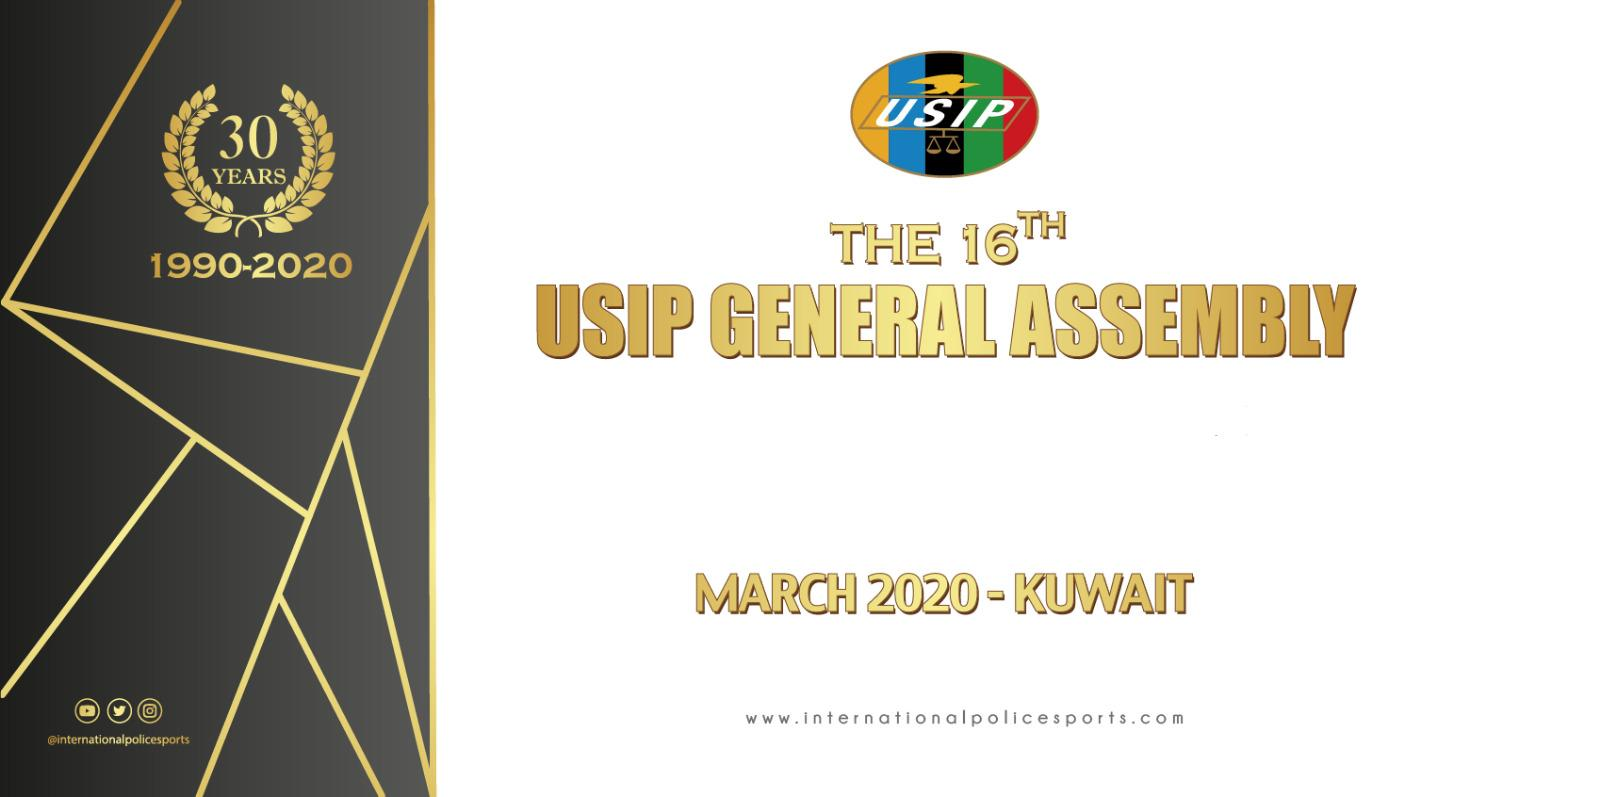 16th usip general assembly march 2020